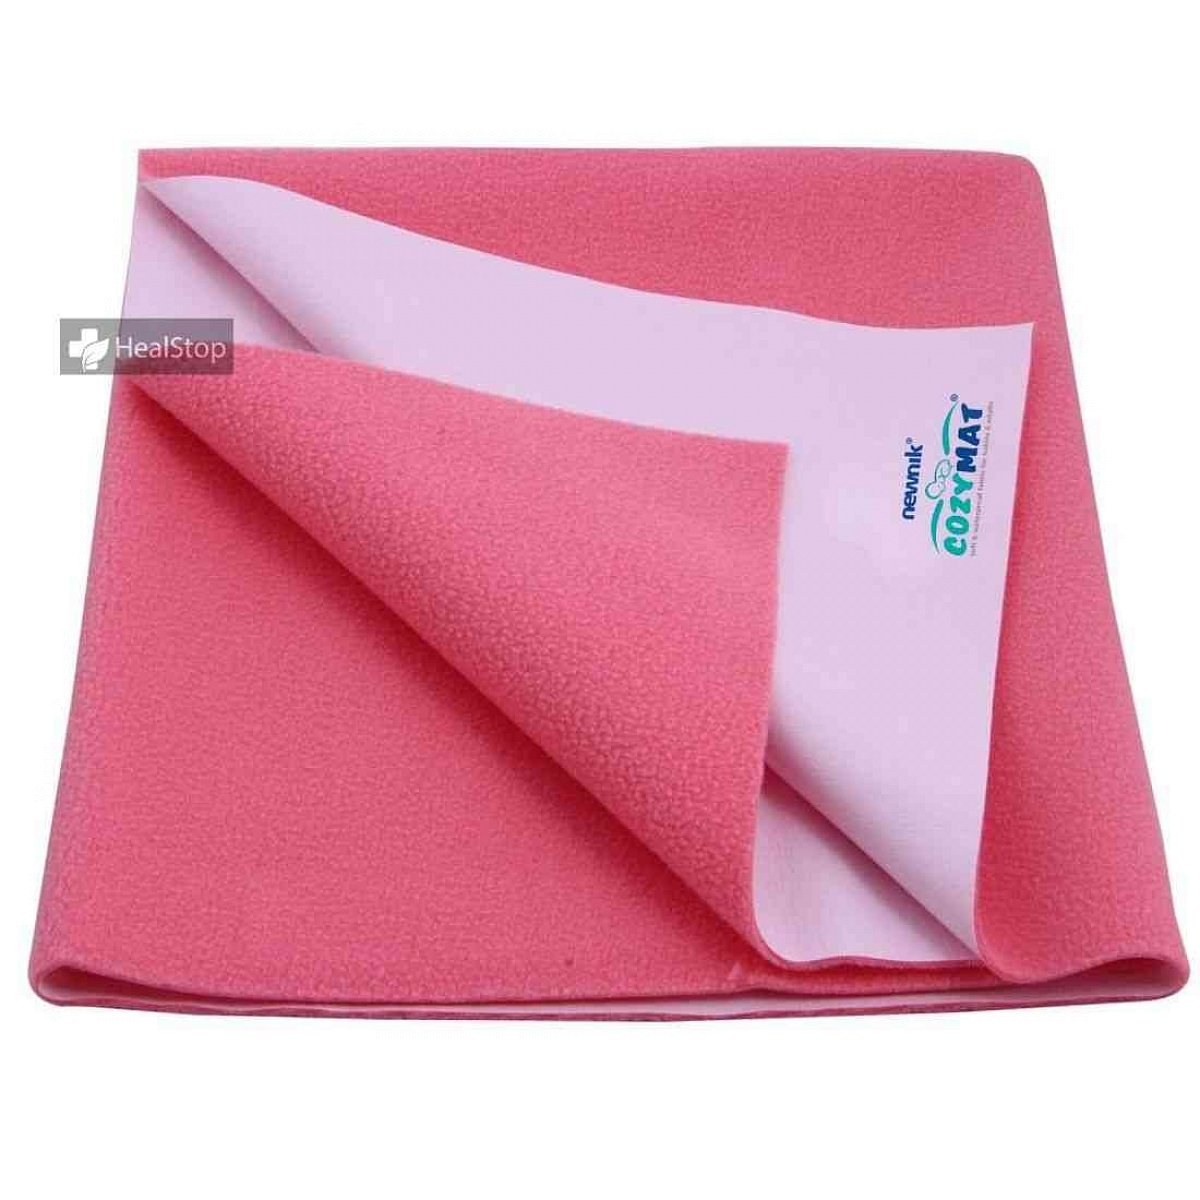 Newnik Cozymat Water Proof Reusable Mat - Salmon Rose